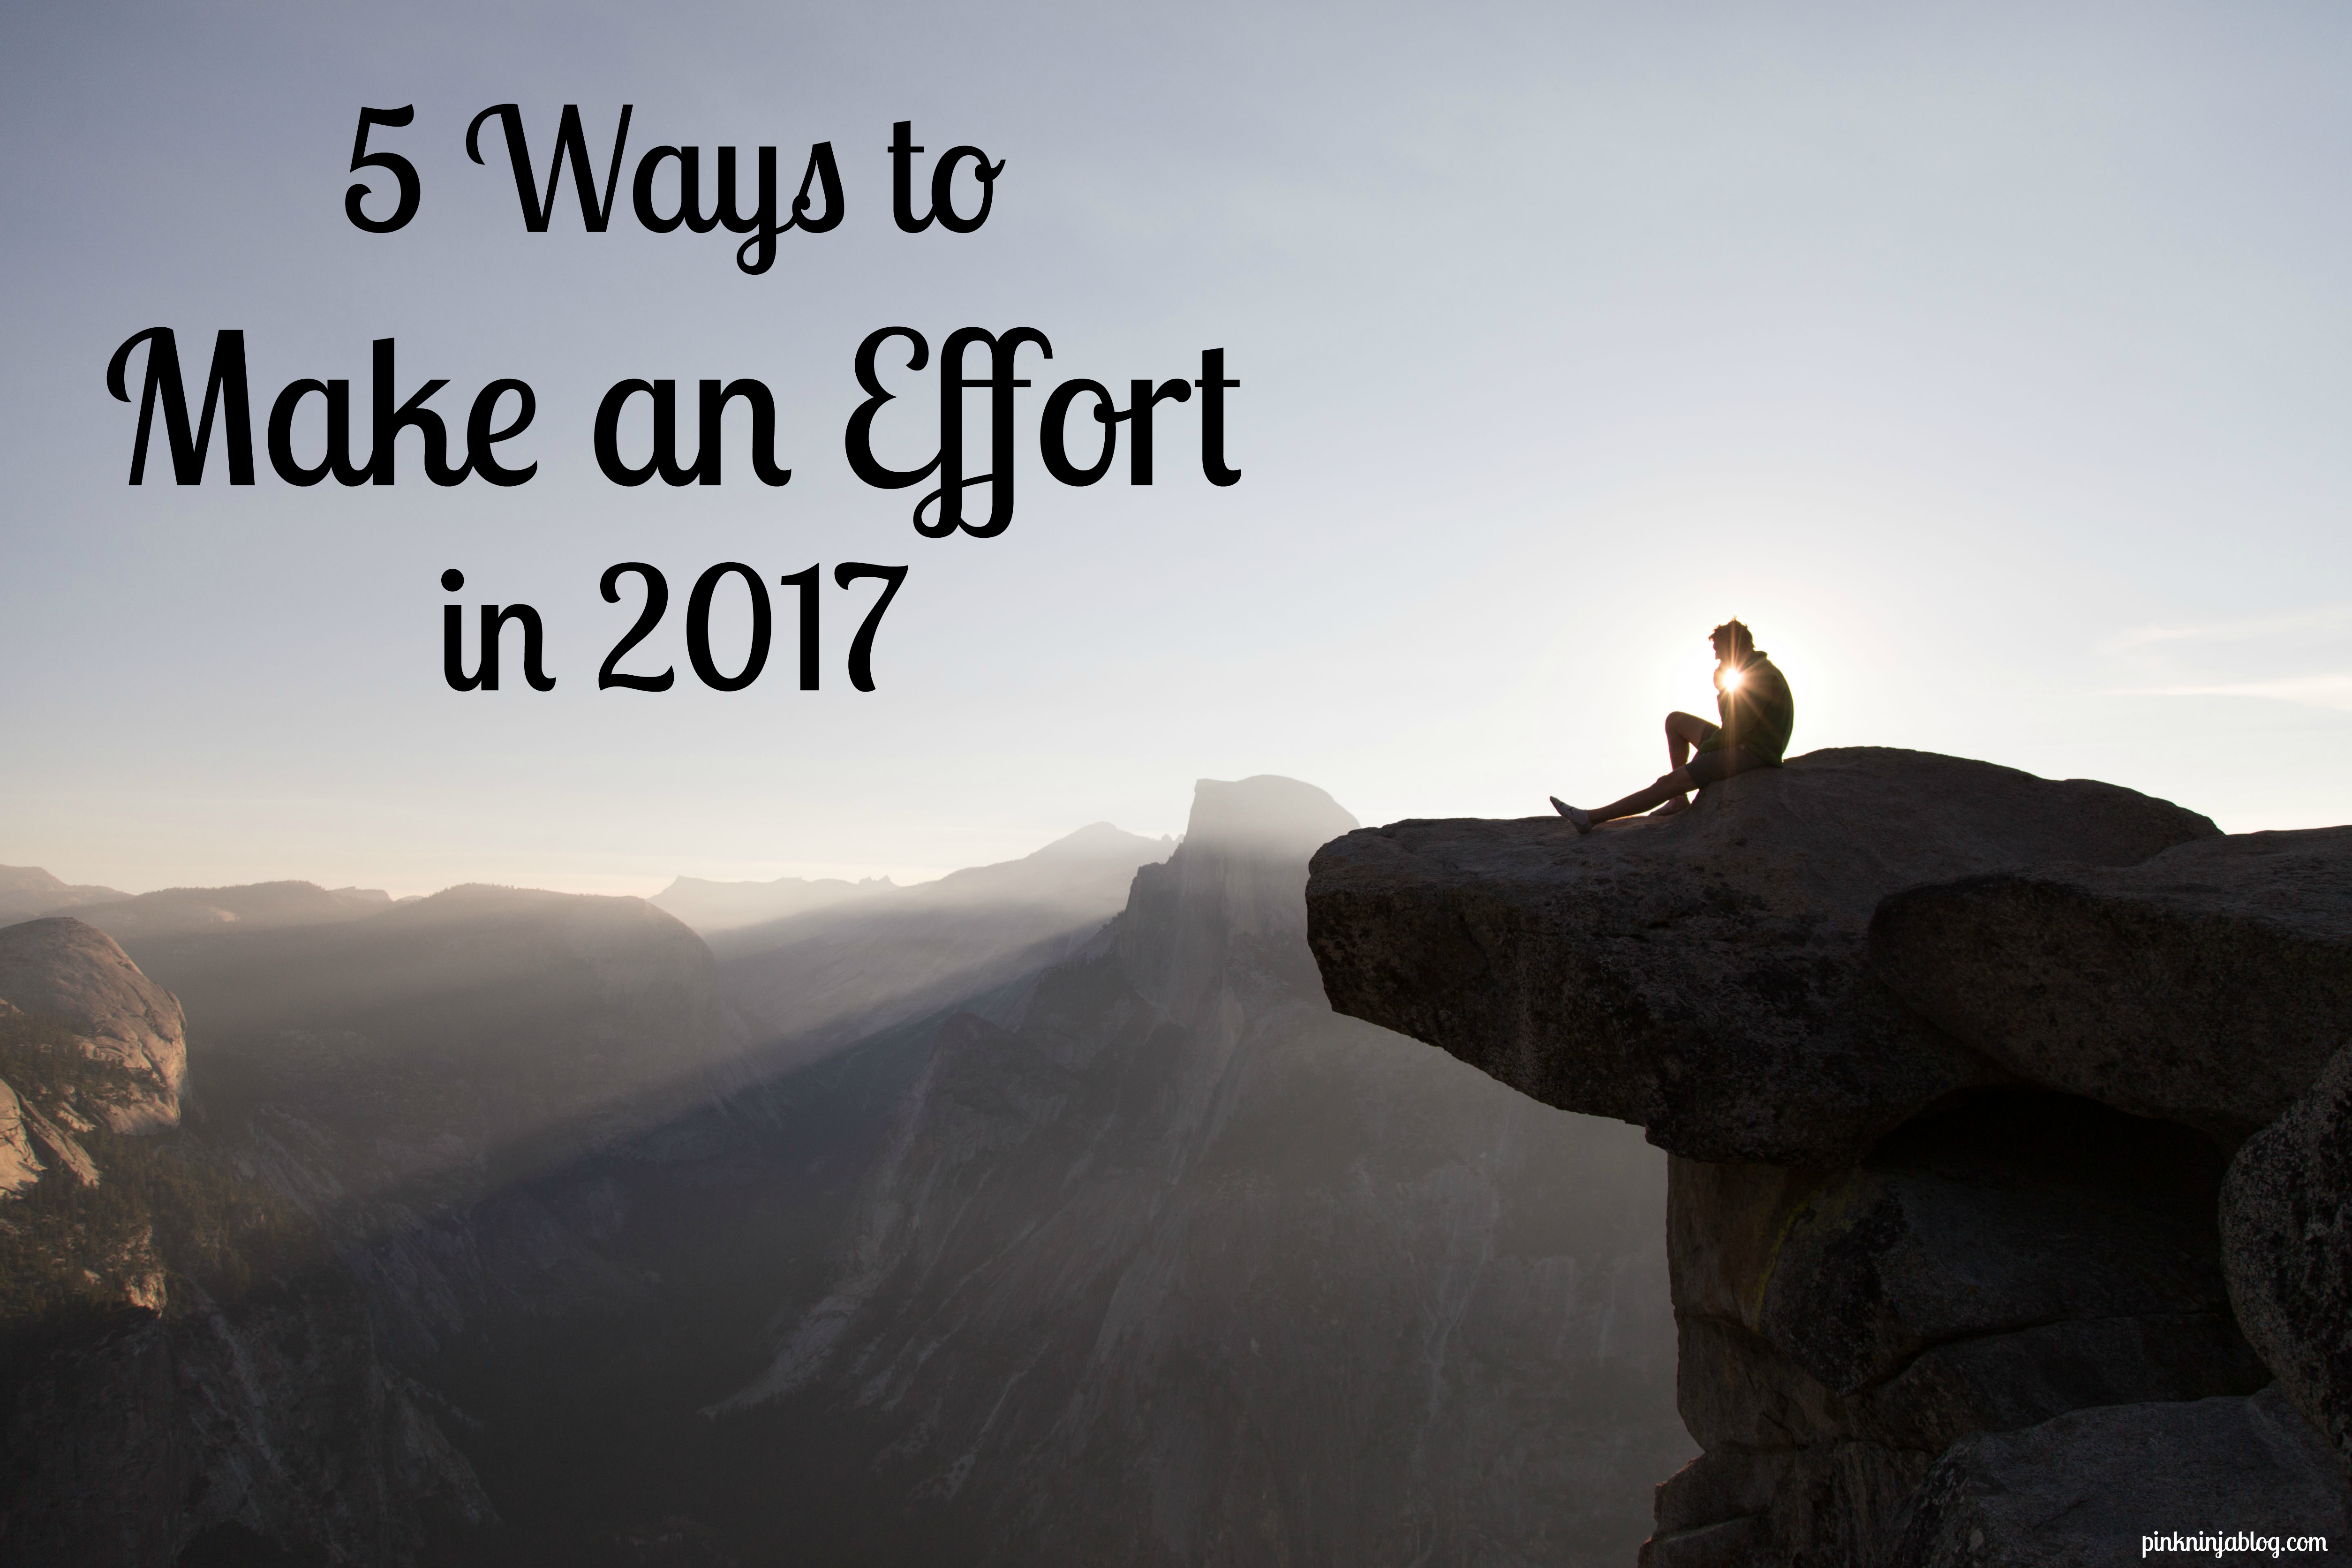 5 Ways to Make an Effort in 2017